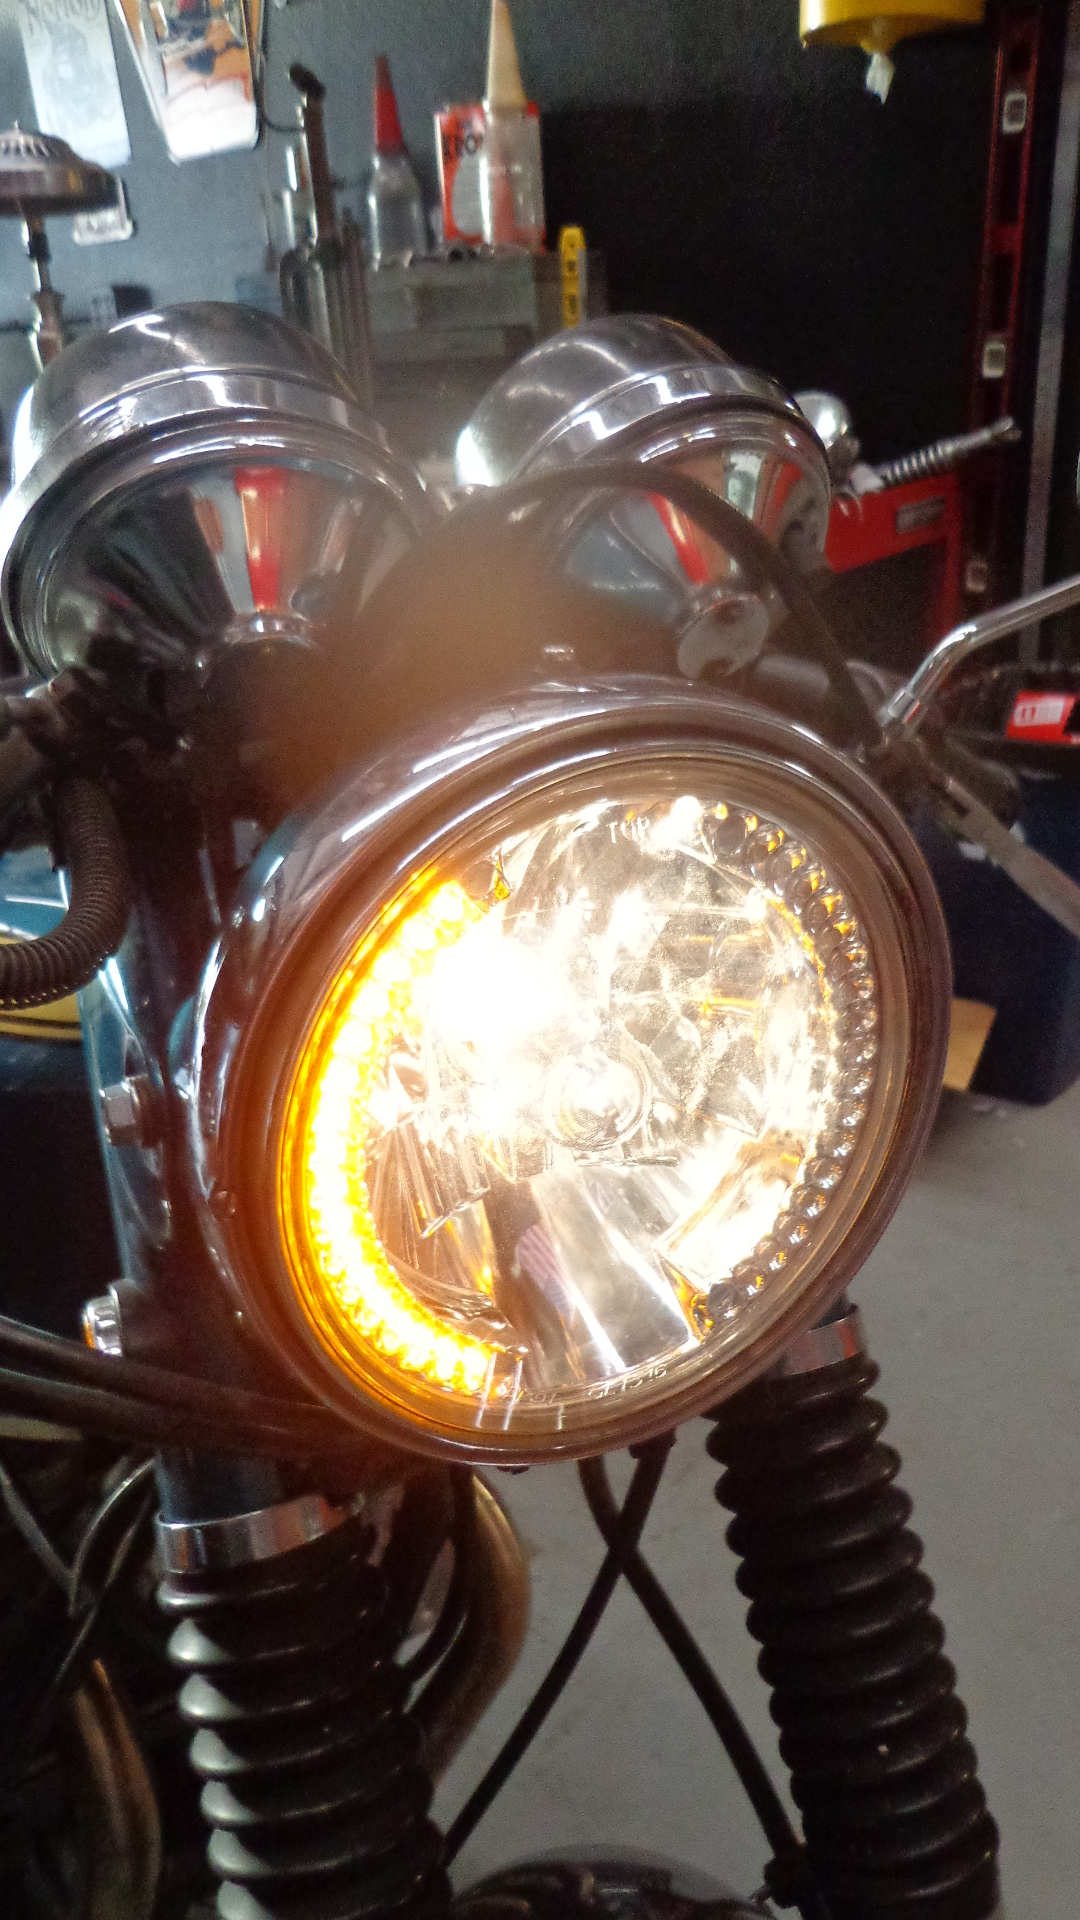 Custom Victory Kingpin Wiring Harness 7 Headlight With L E D Turn Signals Carpy S Cafe Racers